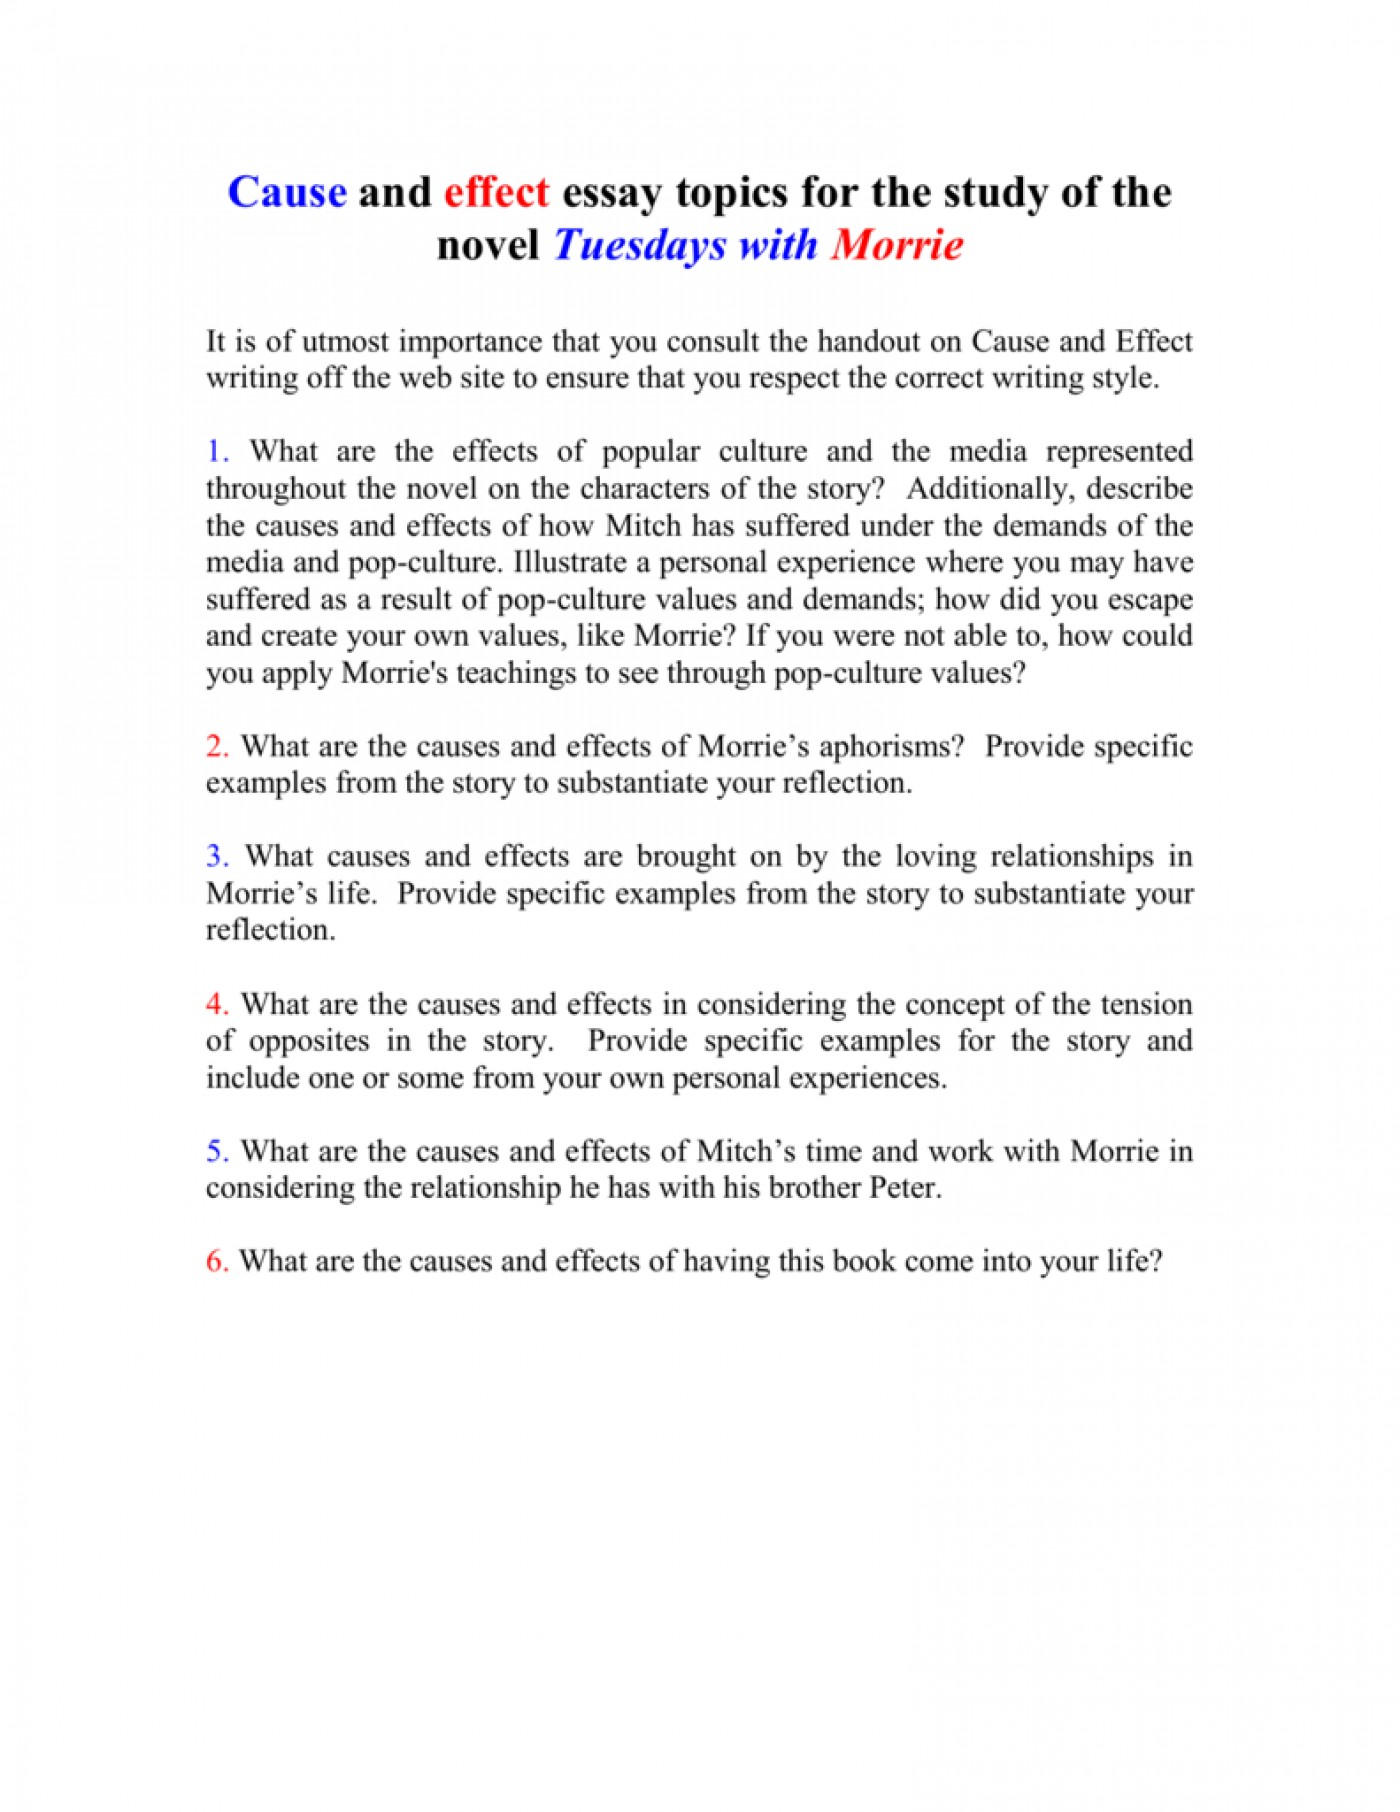 013 Essay Example On Tuesdays With Morrie 008010712 1 Unusual Analytical Reflection Paper Argumentative 1400